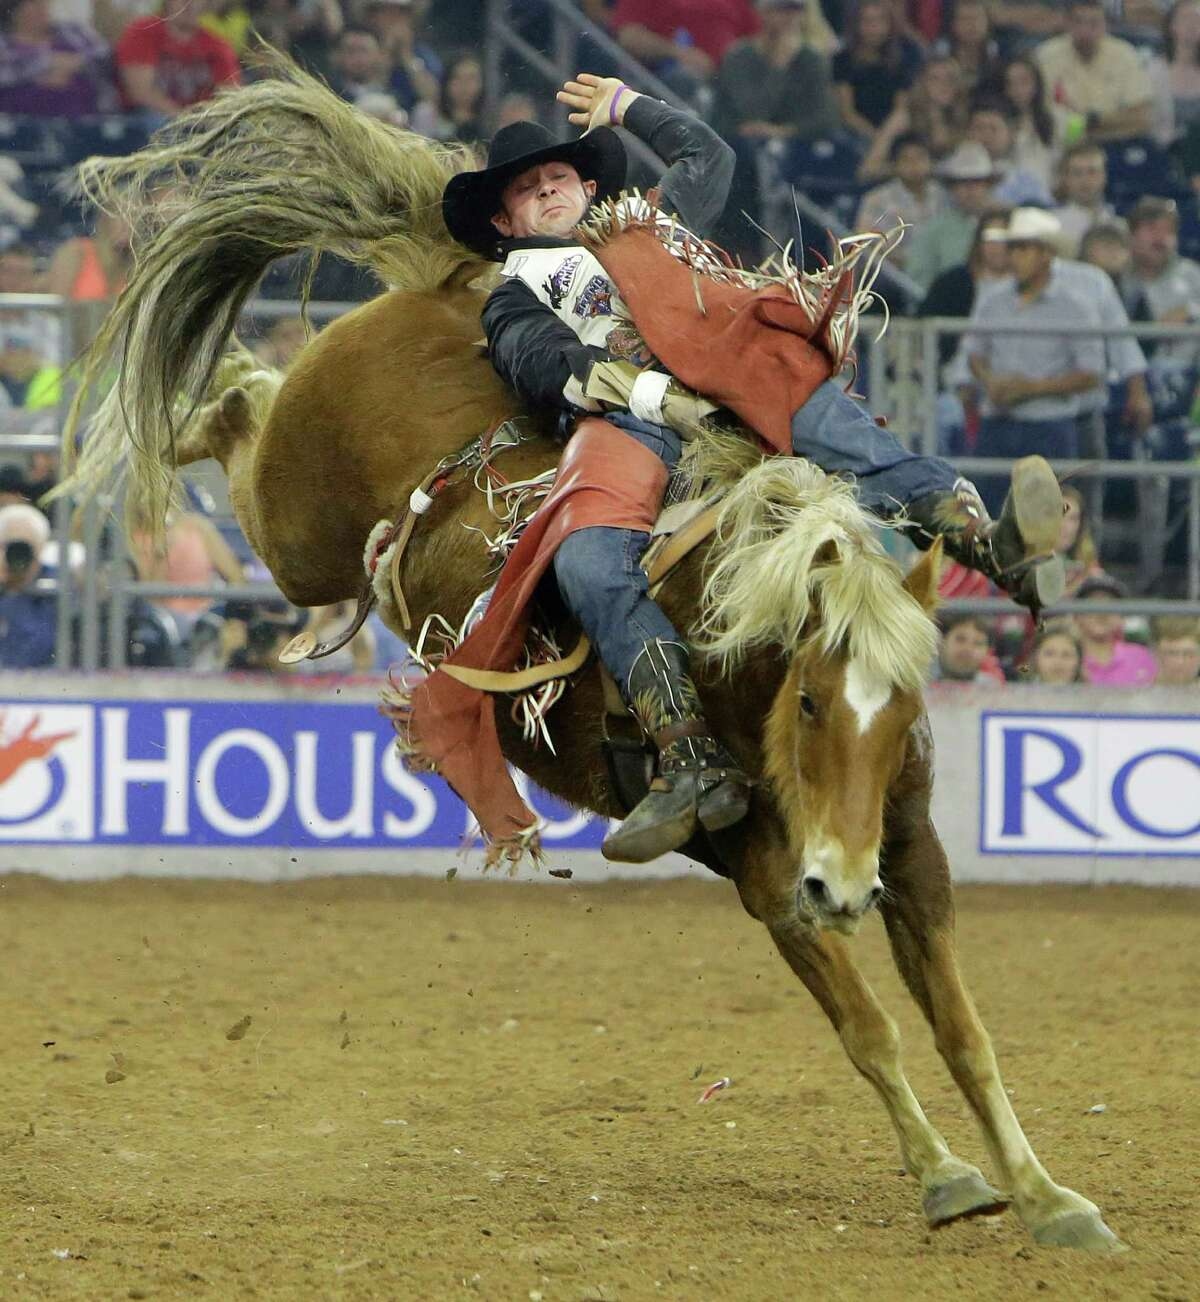 Mason Clements of Sandy, UT competes in bareback riding at RodeoHouston during the Houston Livestock Show and Rodeo in NRG Stadium Thursday, March 17, 2016, in Houston.